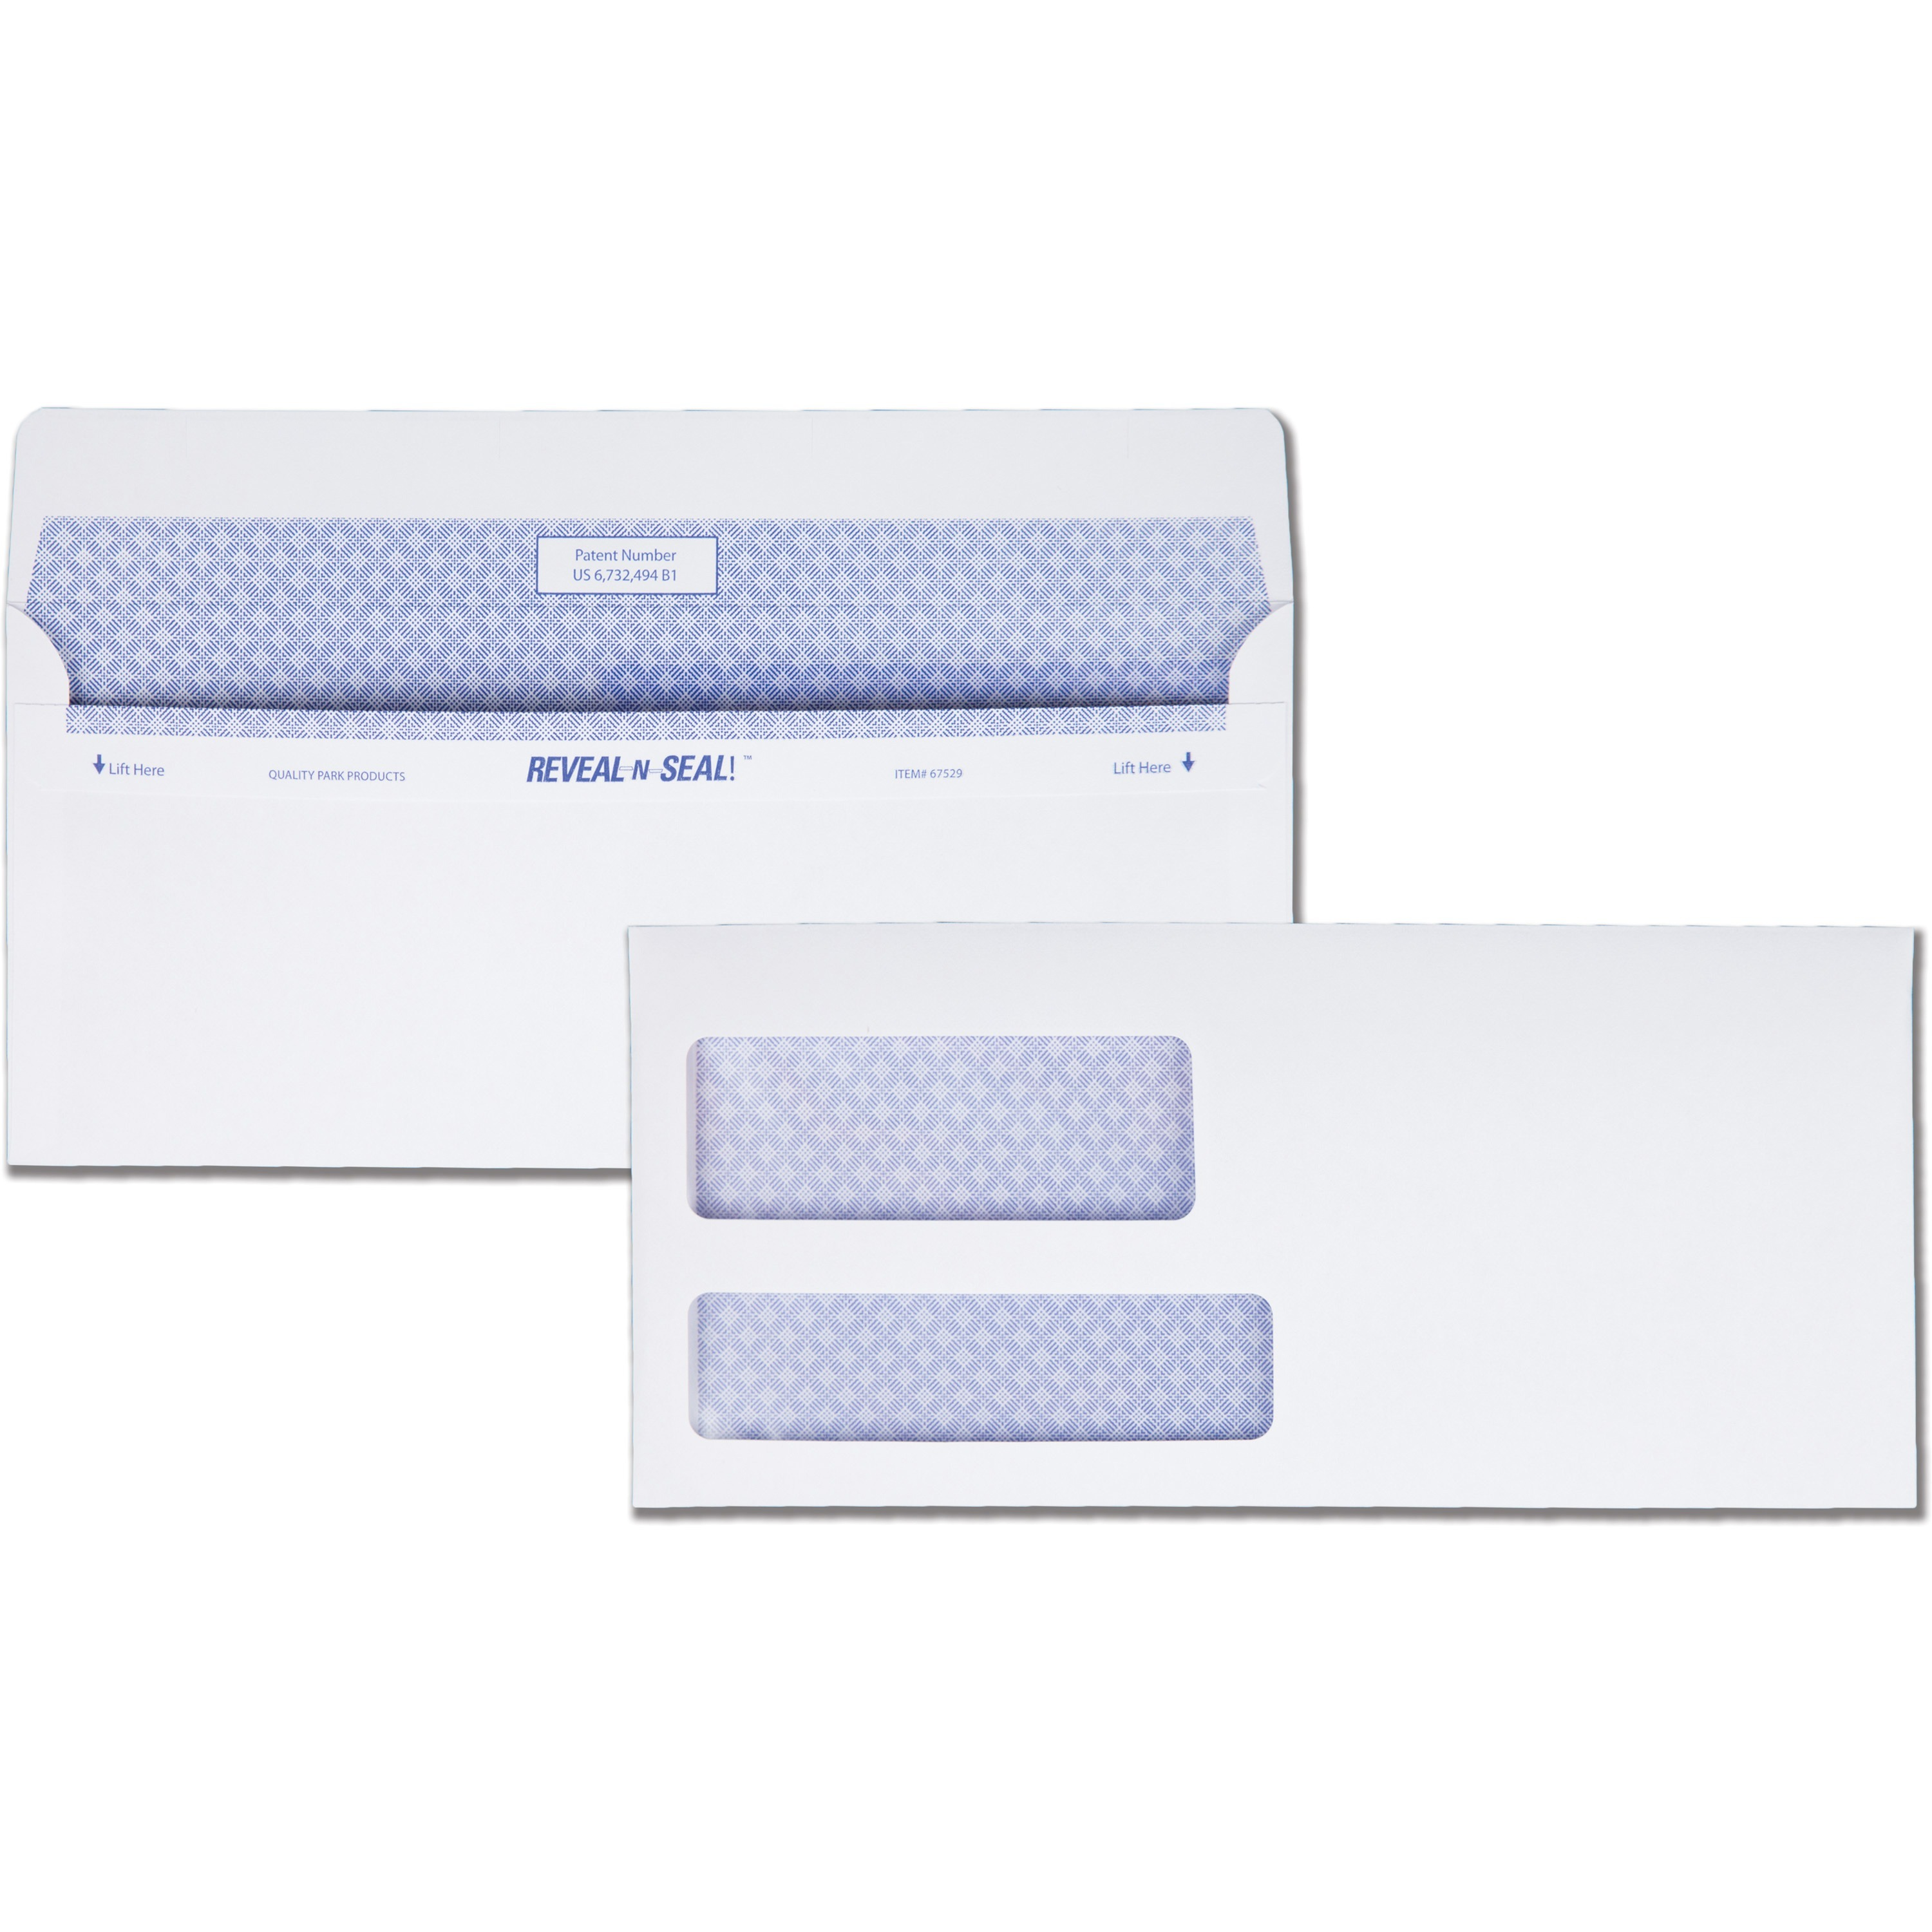 Quality park reveal n seal double window envelope madill for Window envelopes